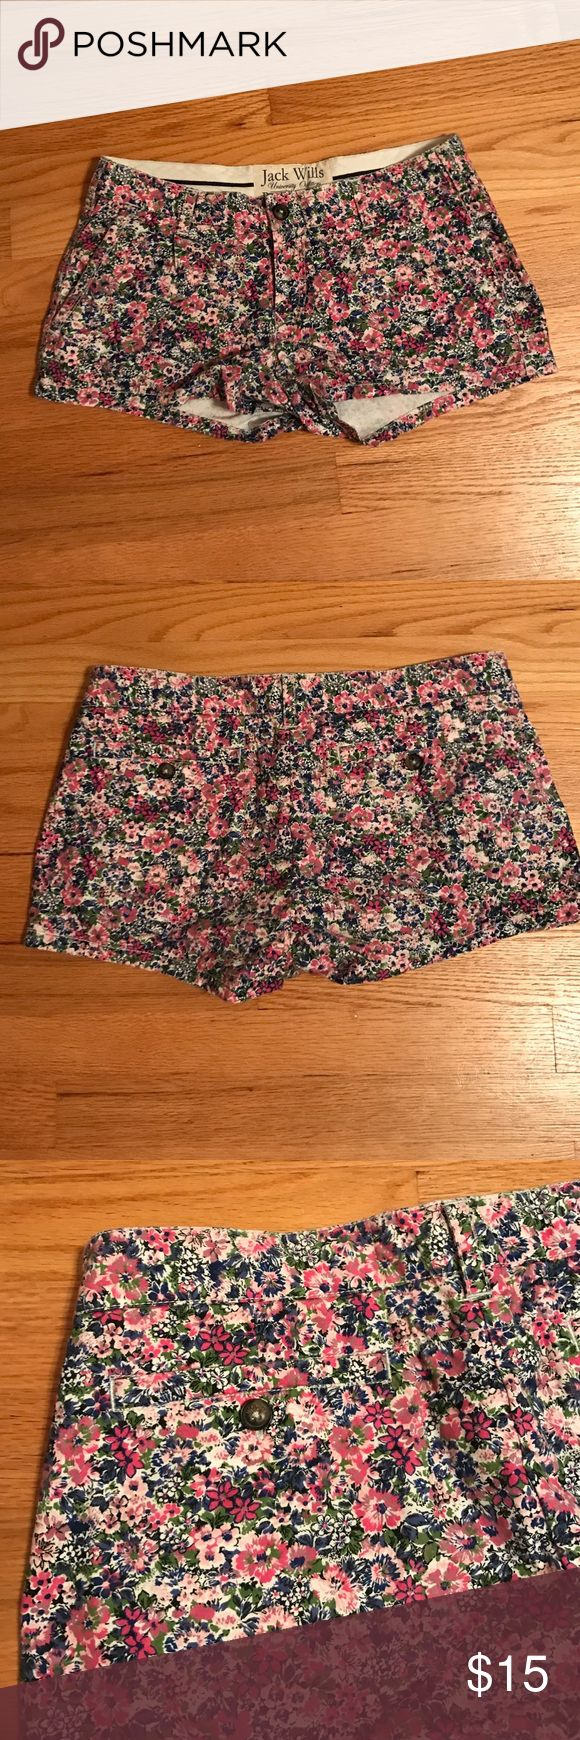 Jack Wills floral shorts Jack Wills floral shorts with zipper and tortoiseshell back buttons. Size 6. Gently worn and overly good condition. Jack Wills Shorts